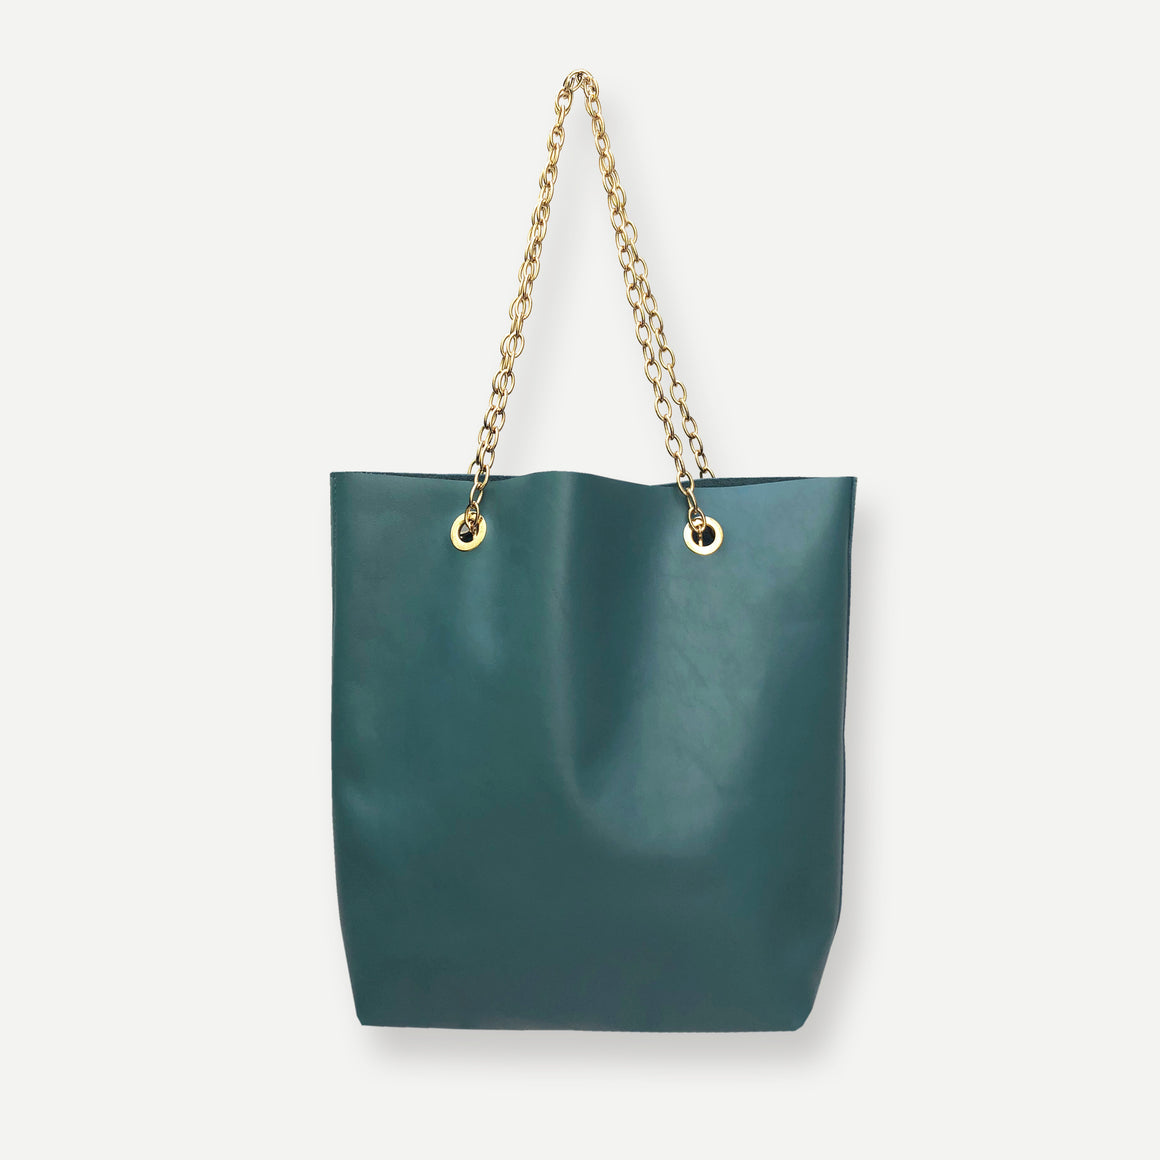 JACKSON TOTE BAG • LAKE